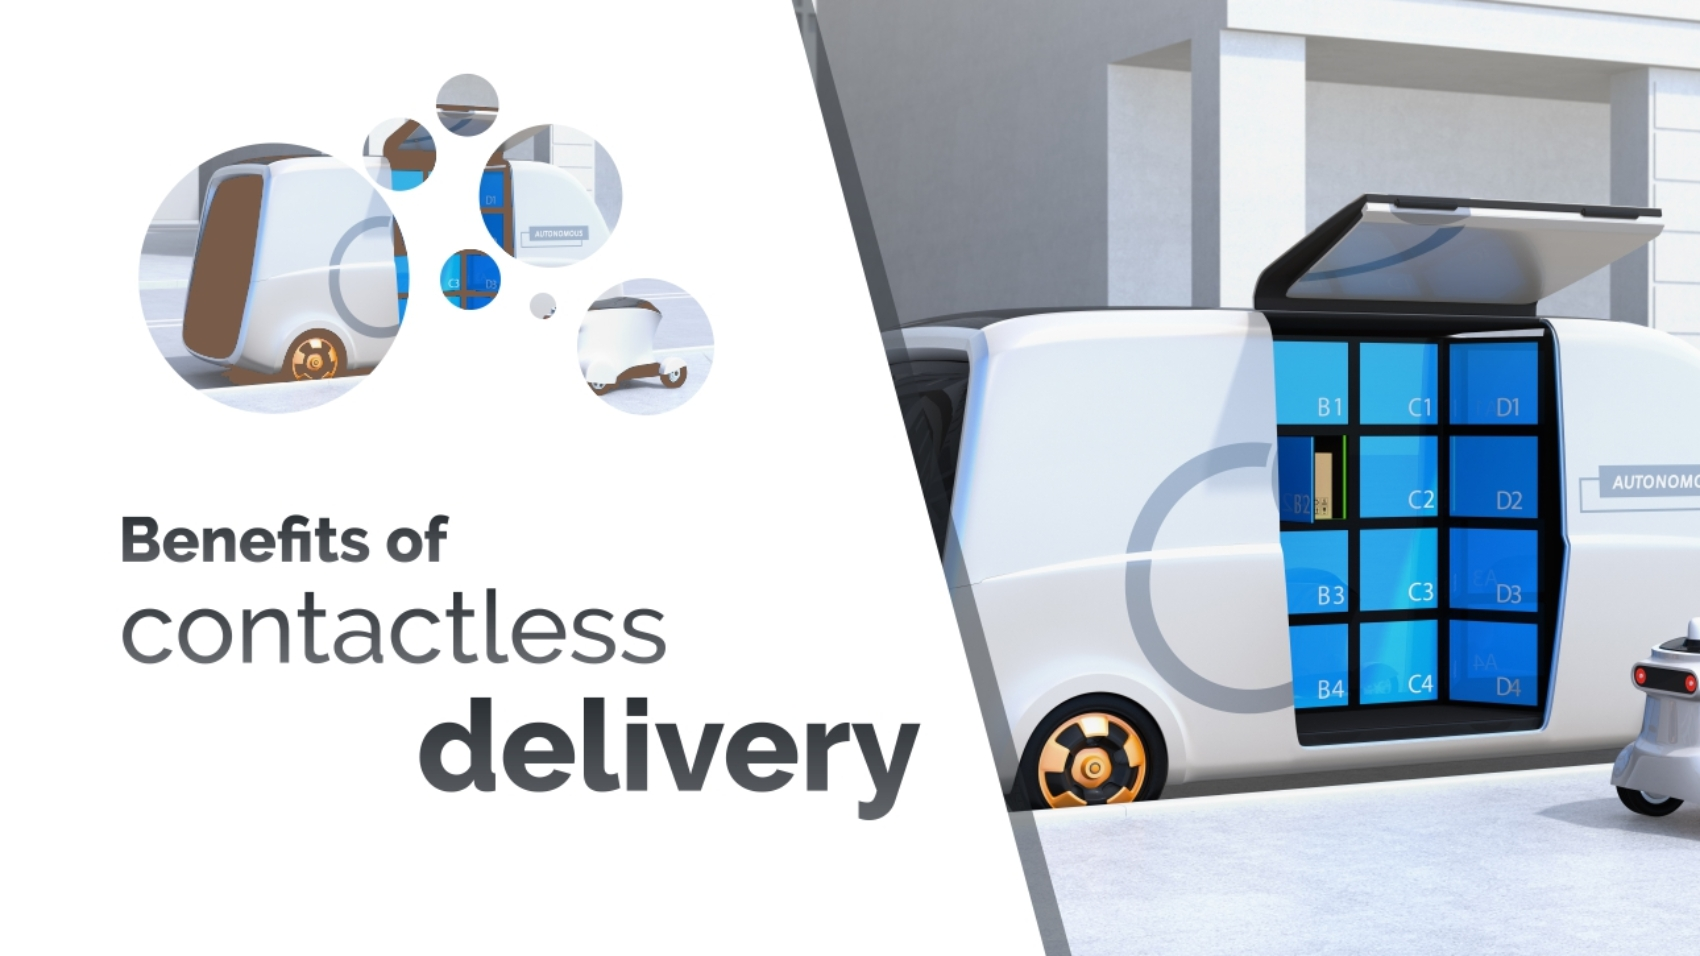 The benefits of contactless delivery